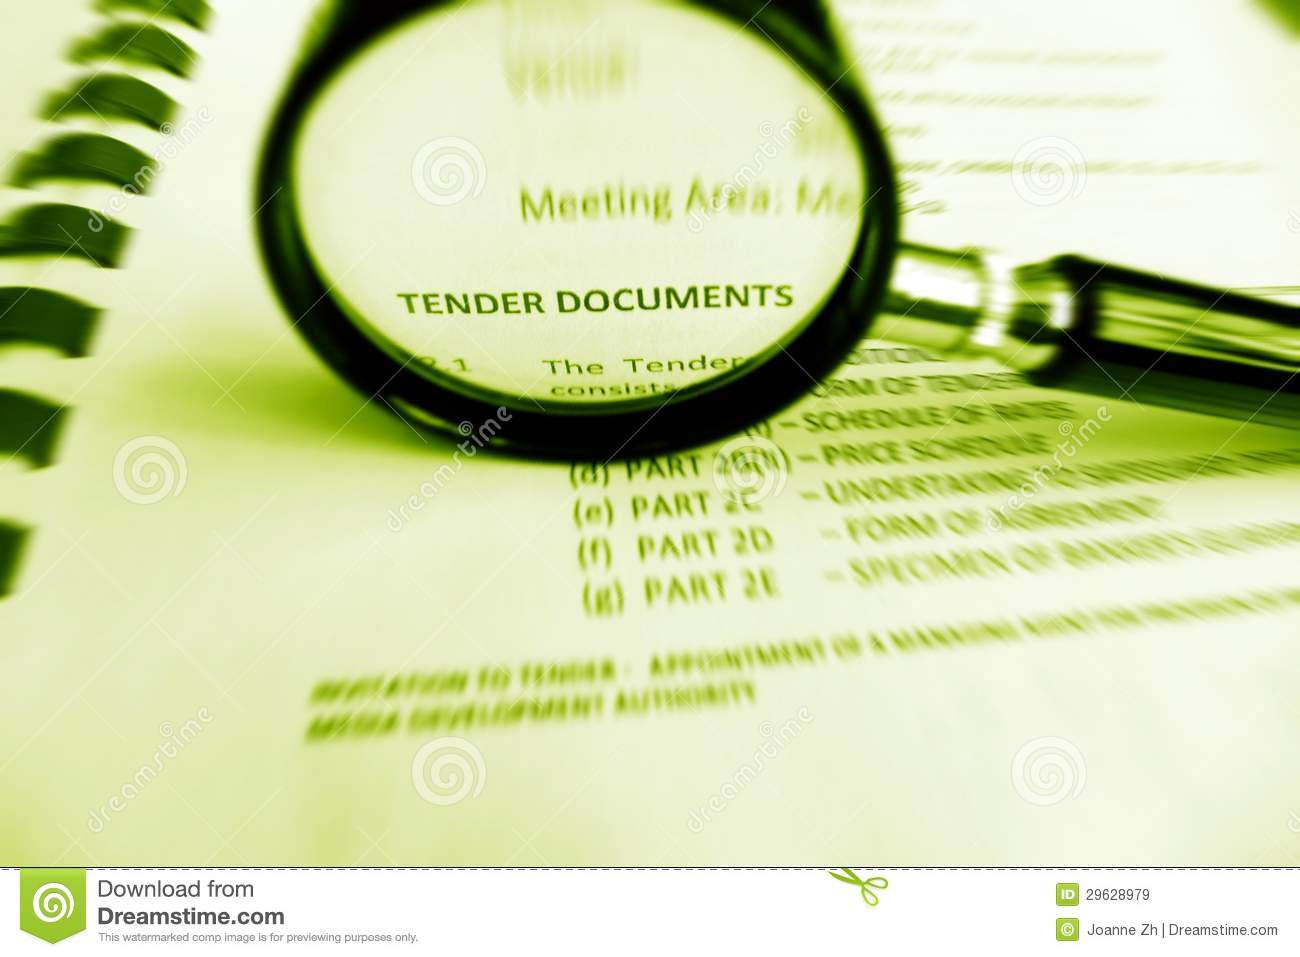 Carefully Studying Tender Documents Stock Image - Image of legal, conditions: 29628979